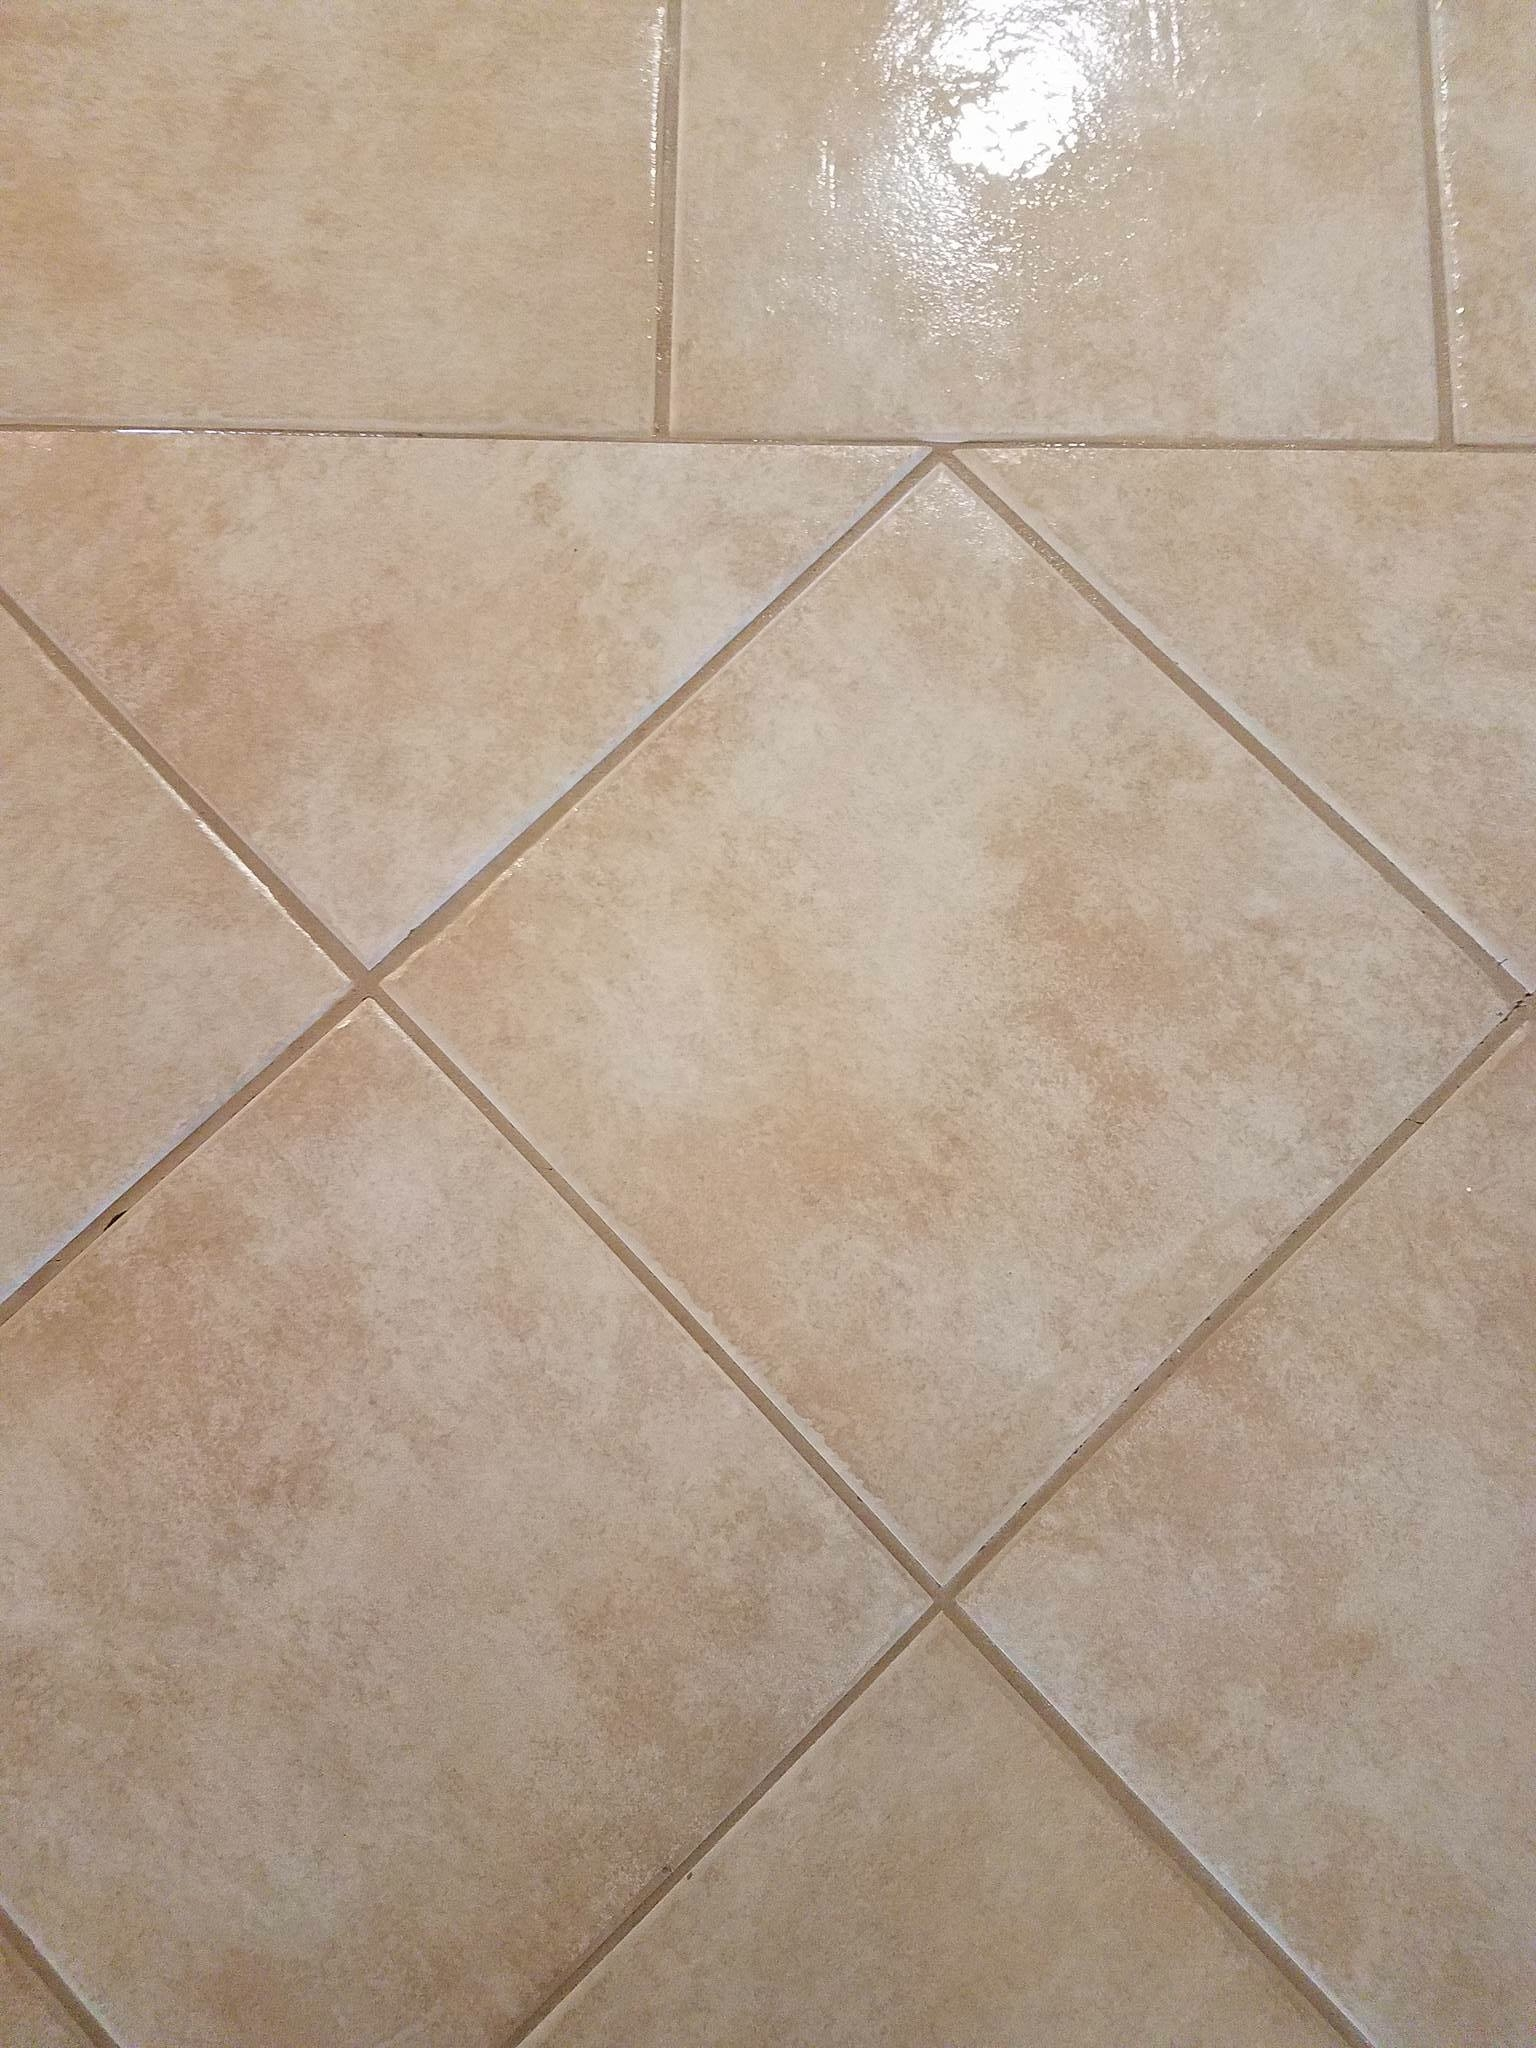 local tile grout cleaning laingsburg mi